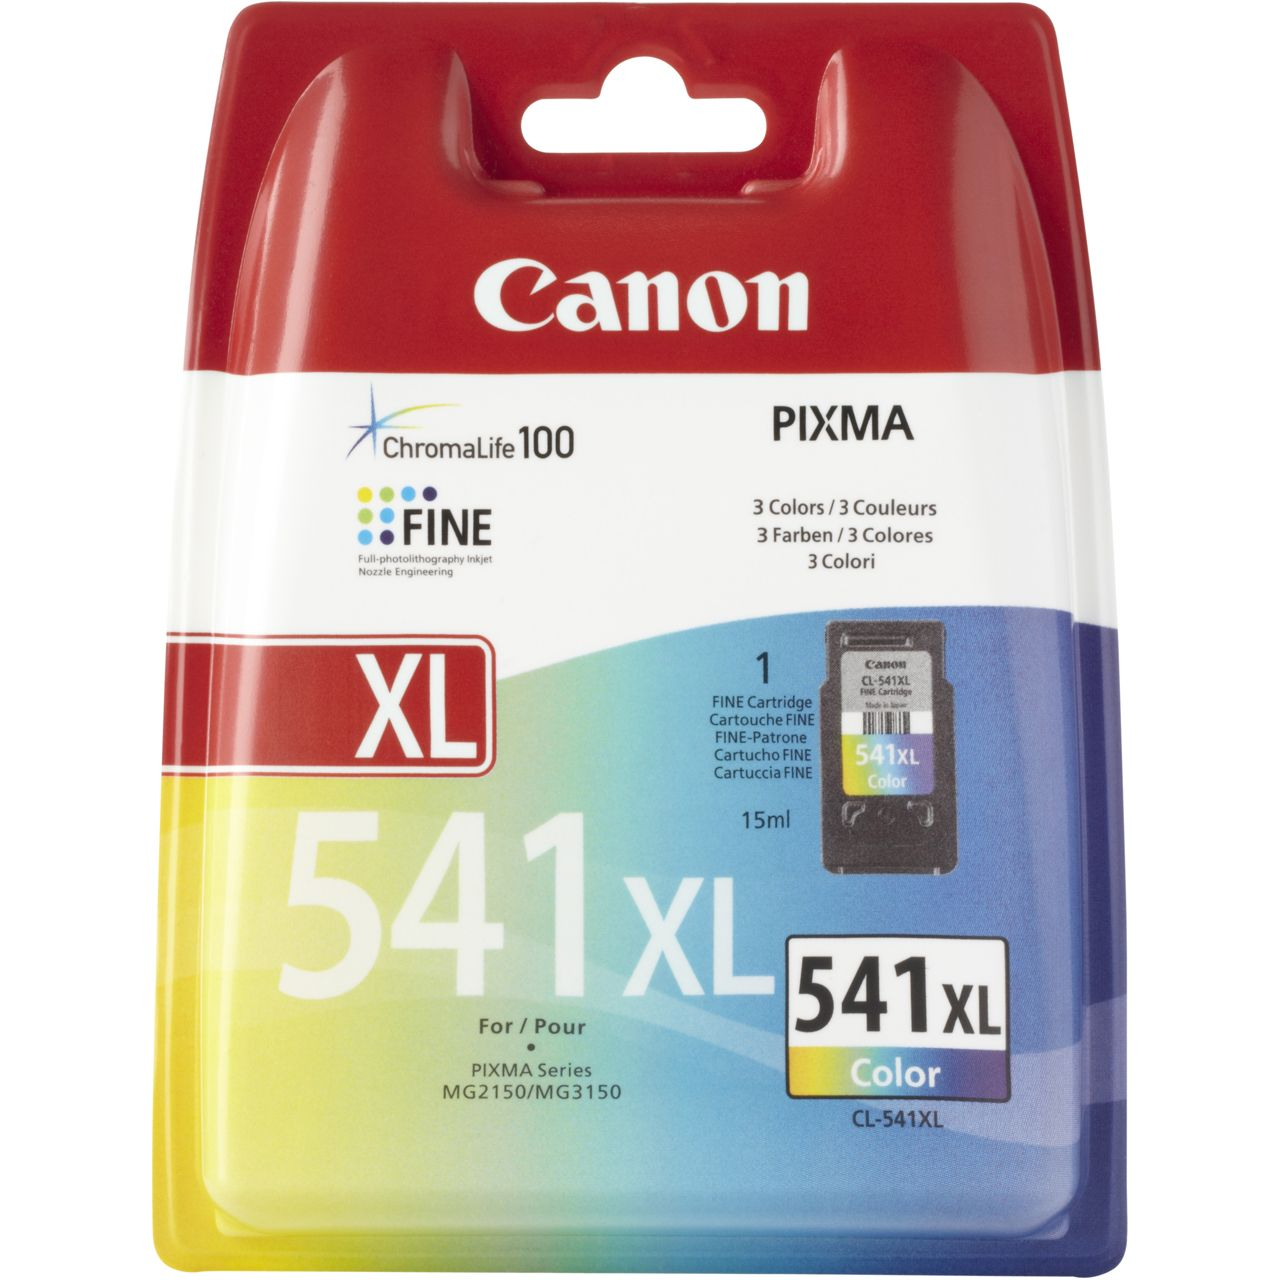 CL-541XL Cartucho de tinta tricolor Canon (15ml.)